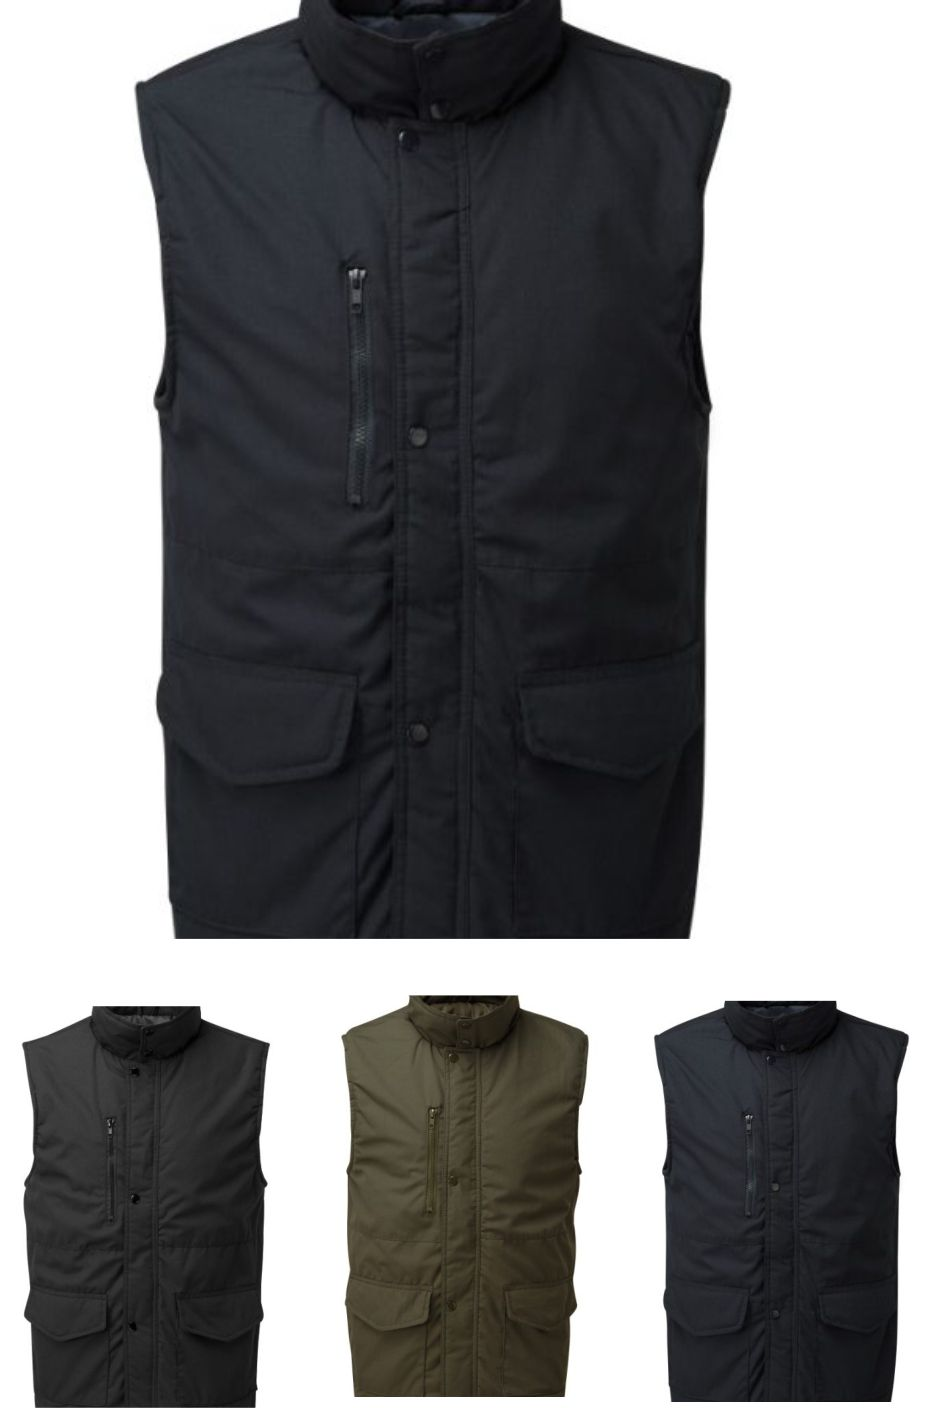 Fort 222 Wroxham Bodywarmer